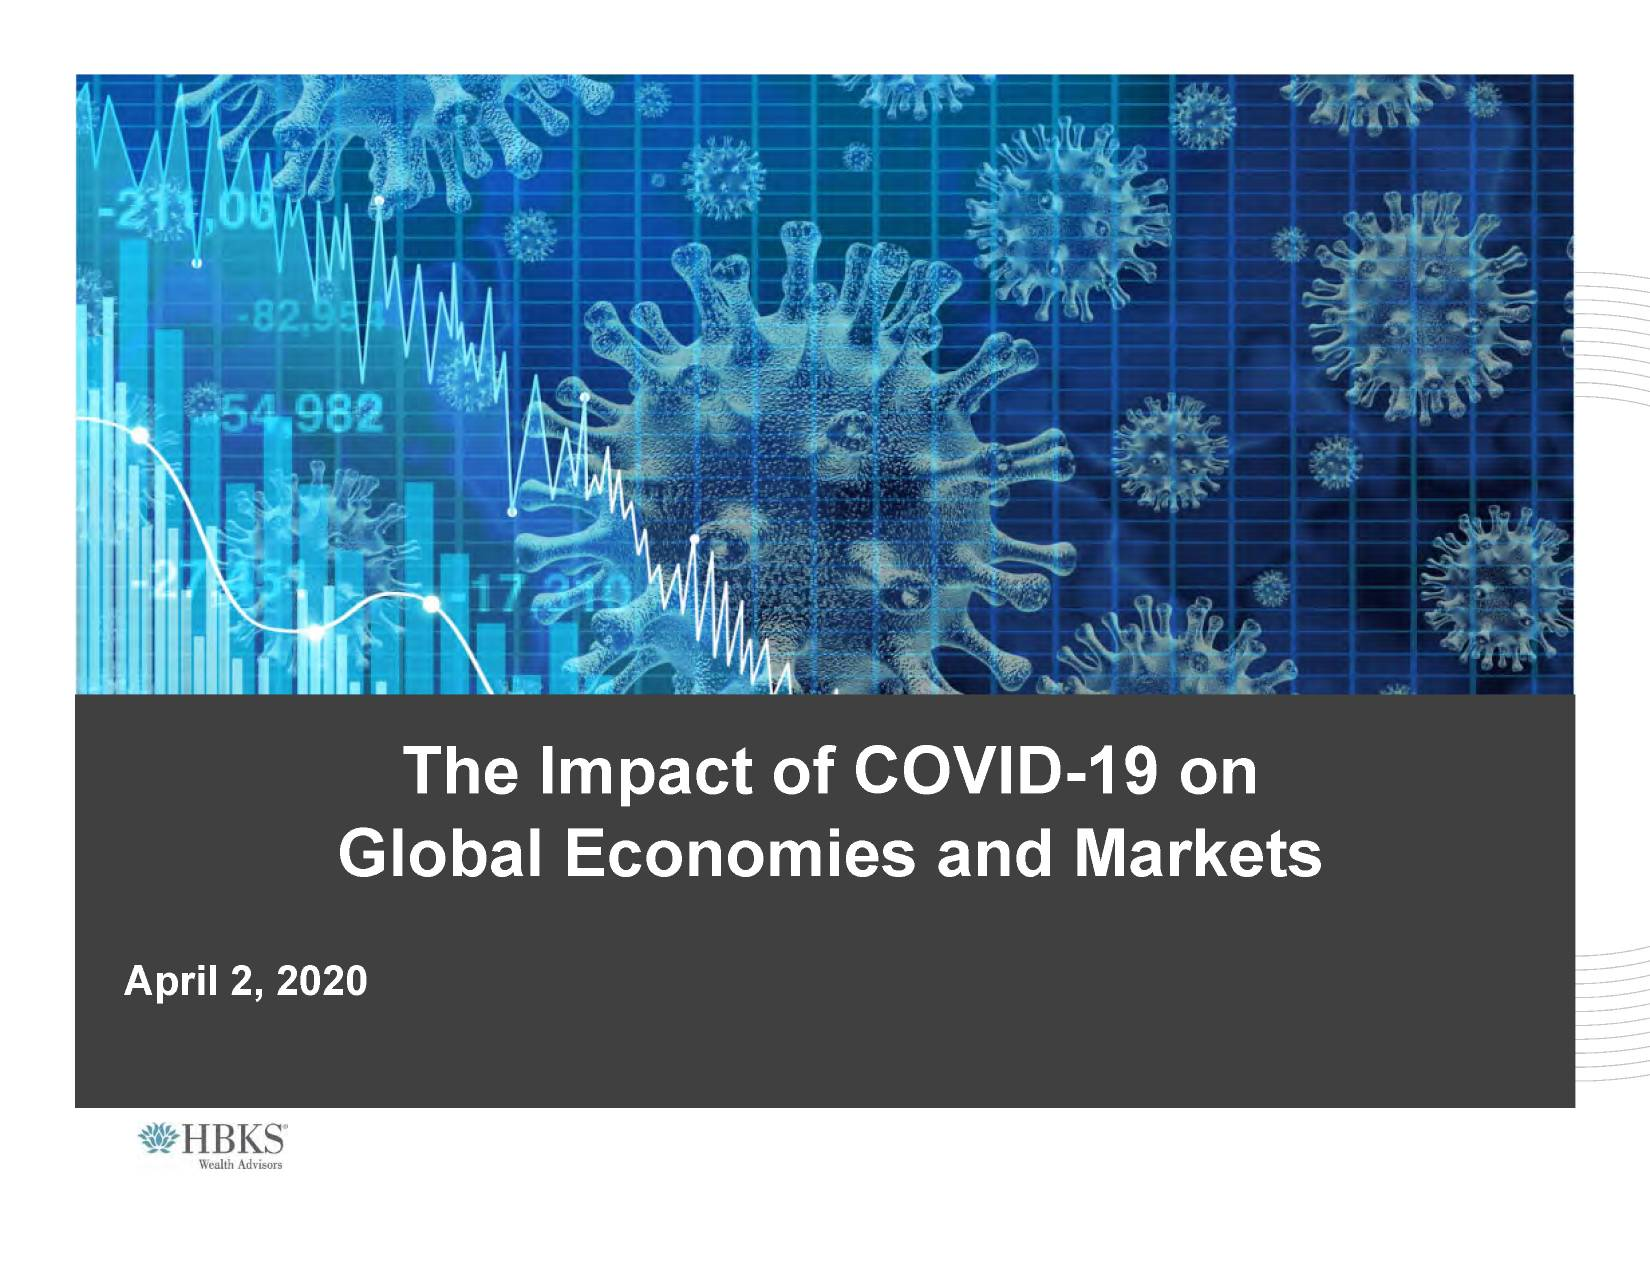 Watch: The Impact of COVID-19 on Global Economics and Markets